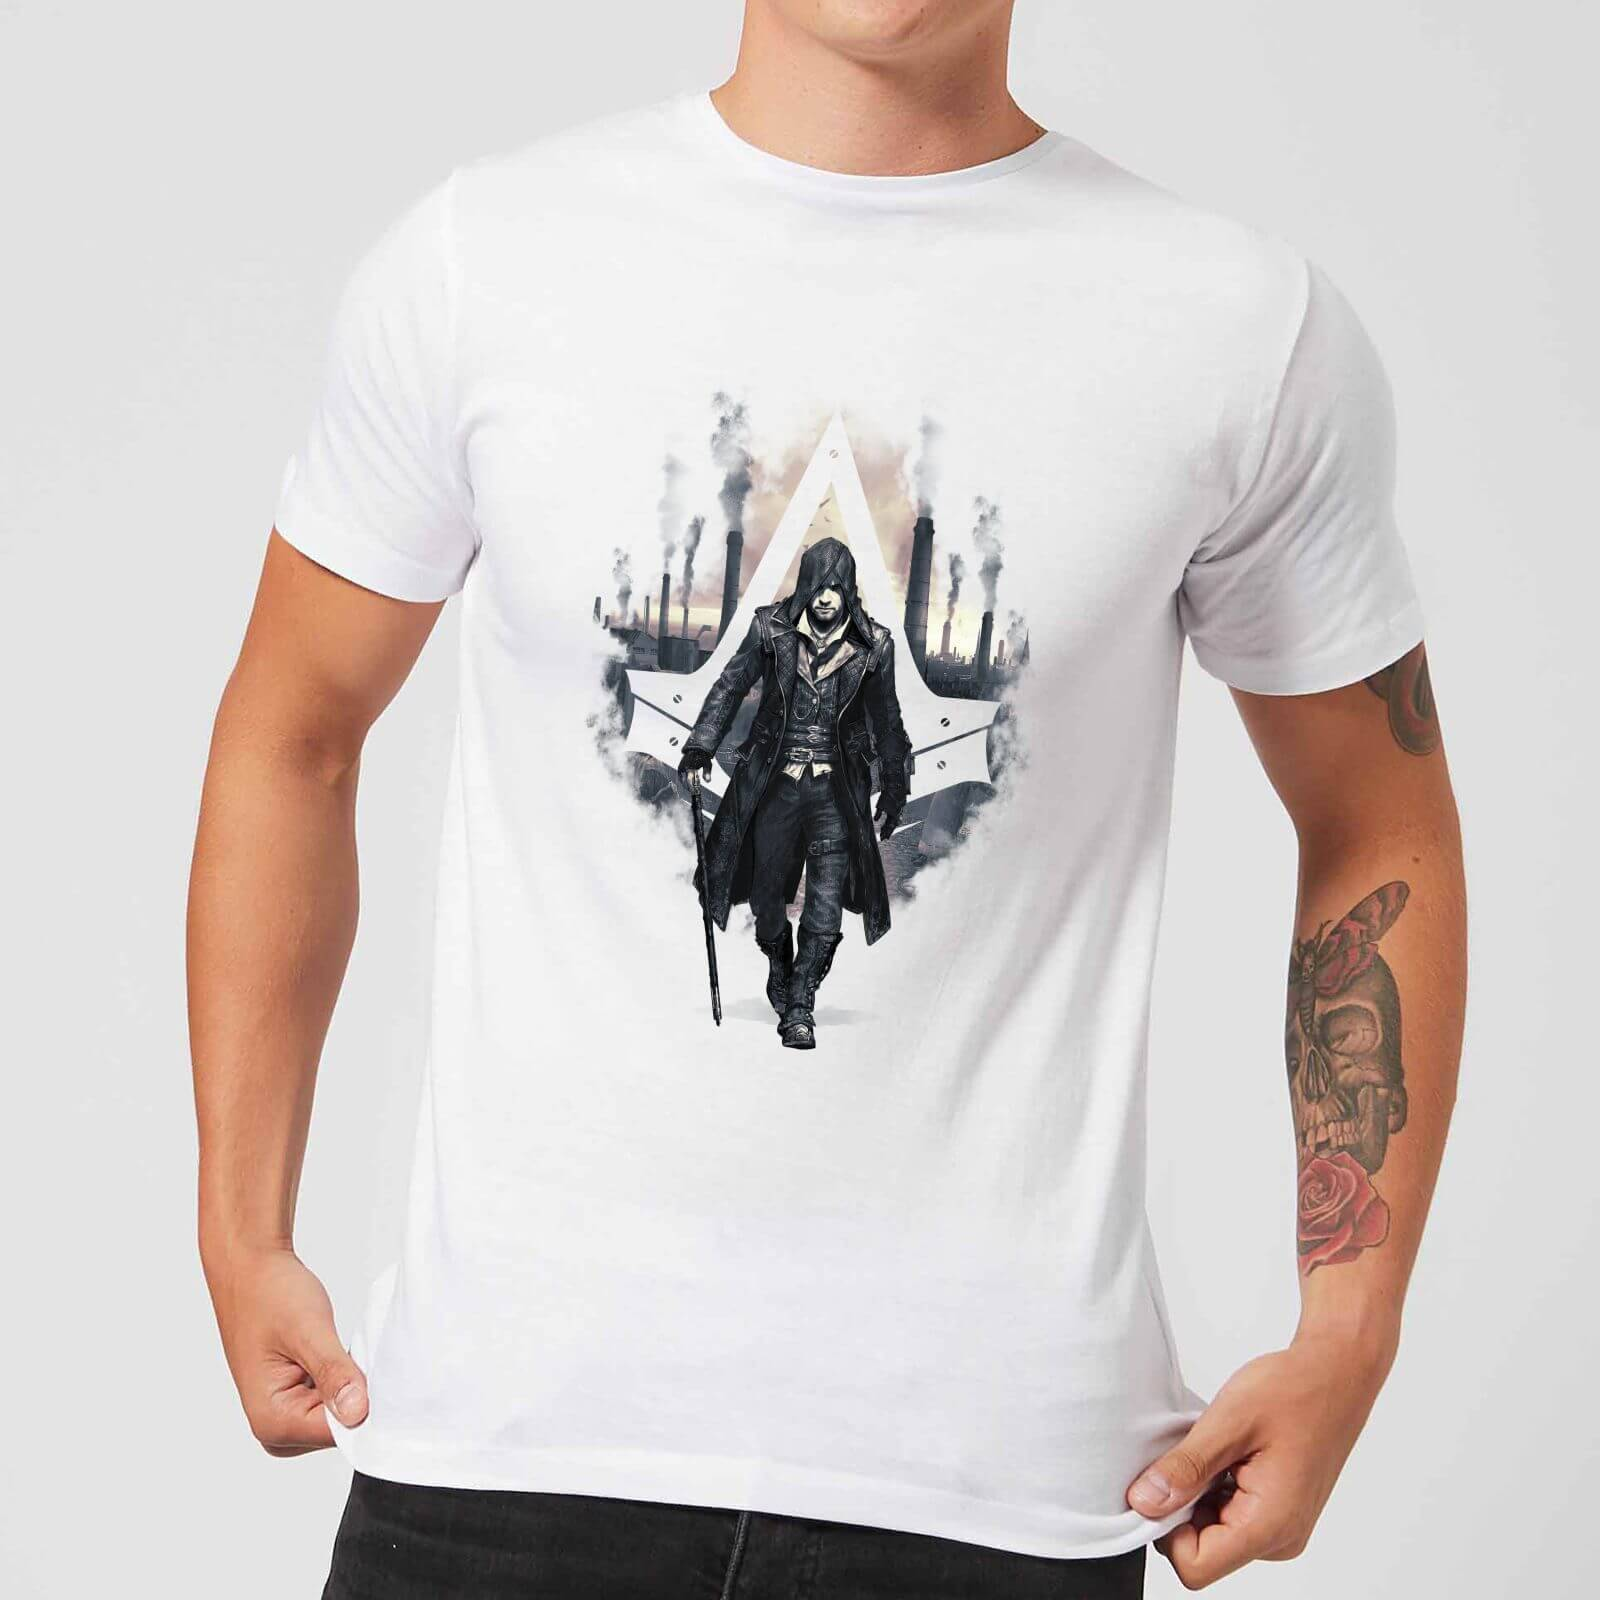 Assassin's Creed T-Shirt Homme London Skyline Assassin's Creed Syndicate - Blanc - M